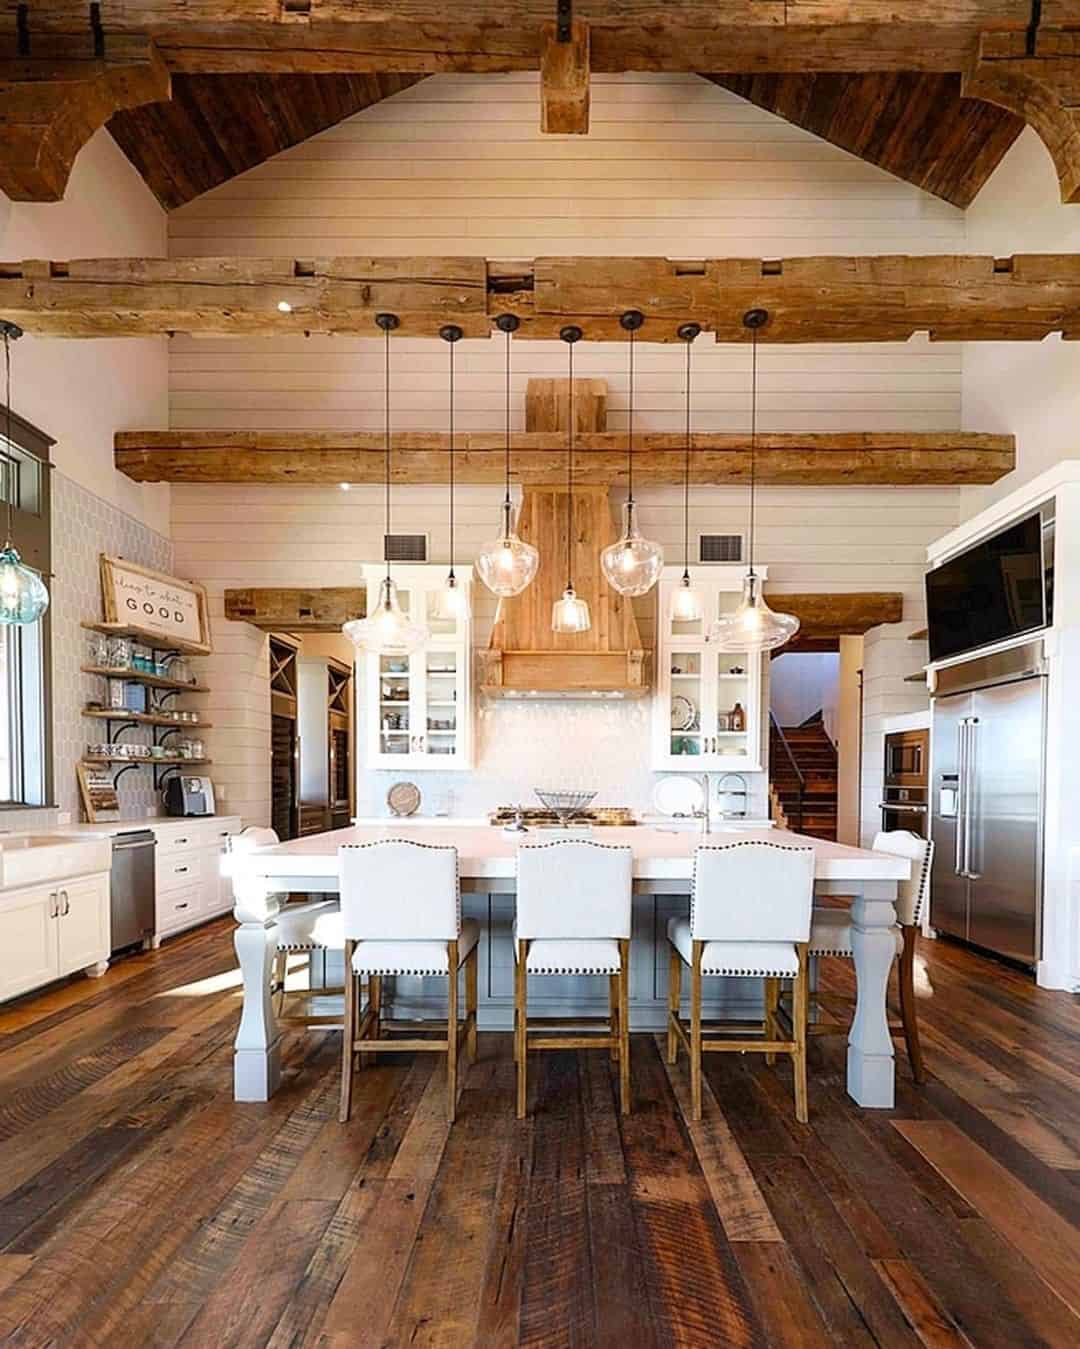 23 Best Cottage Kitchen Decorating Ideas And Designs For 2019: 21 Clever Ideas For Decorating Your Kitchen In Farm House